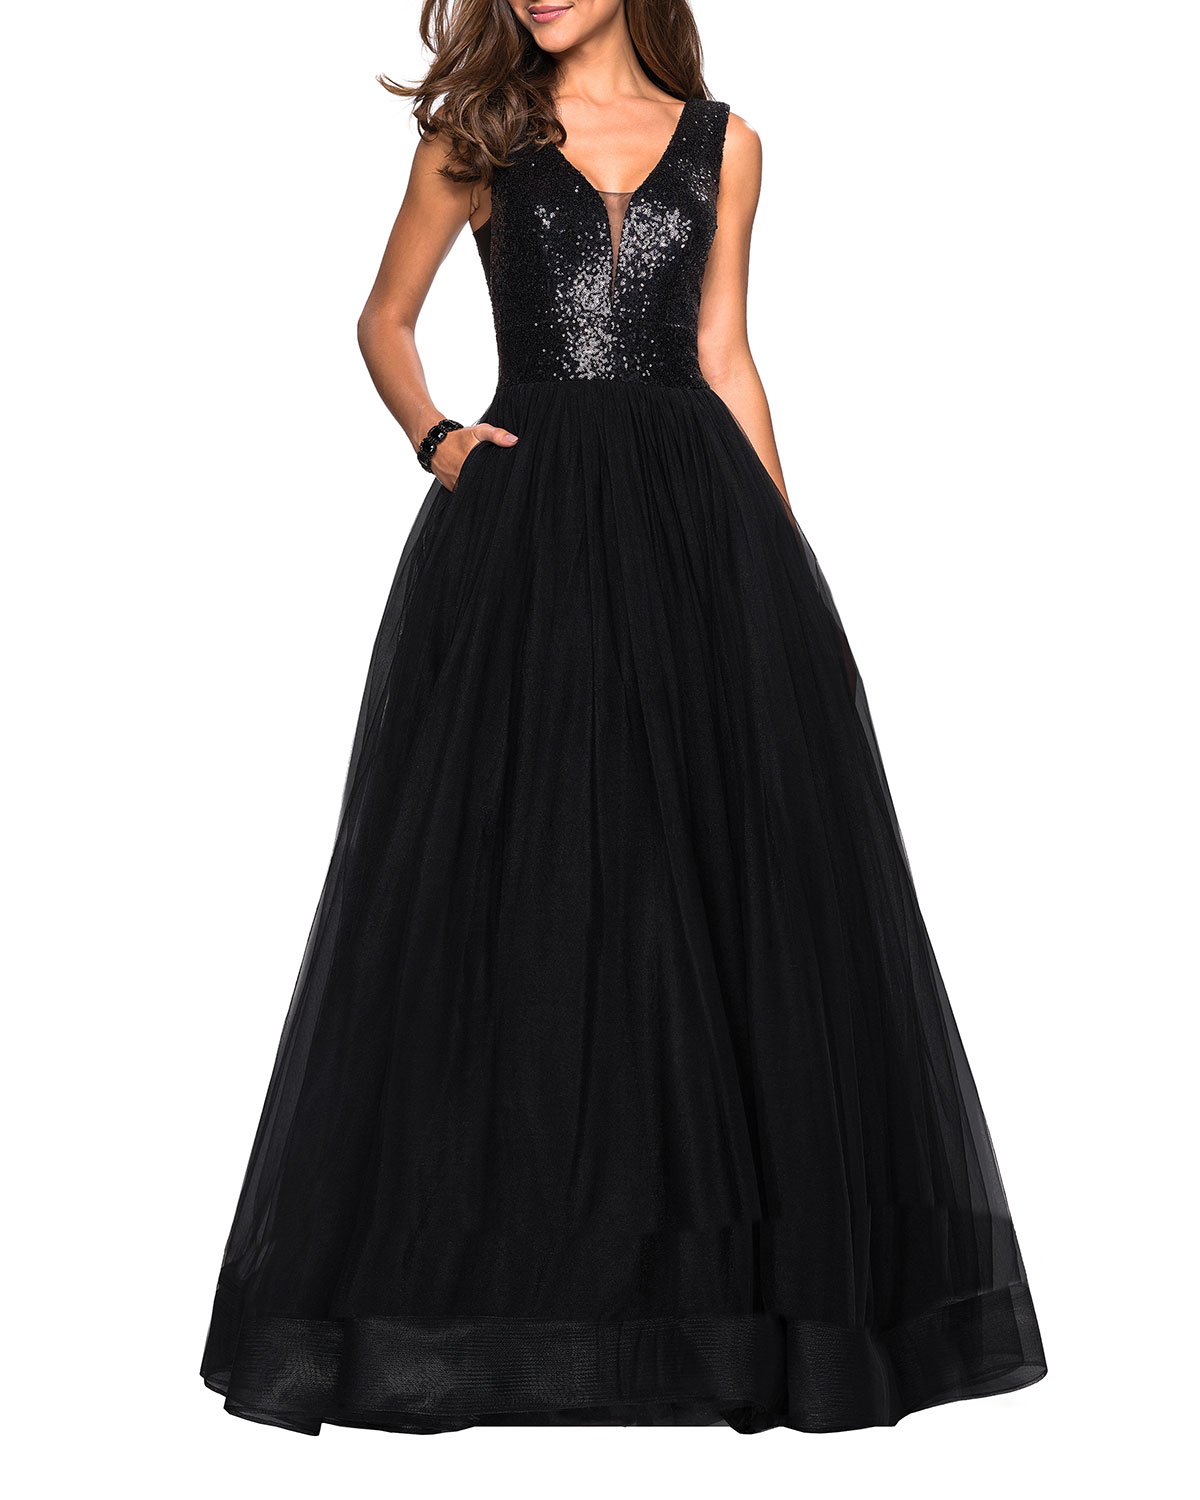 2c630afcb03 La Femme Sequin-Bodice V-Neck Sleeveless Tulle Ball Gown with Pockets